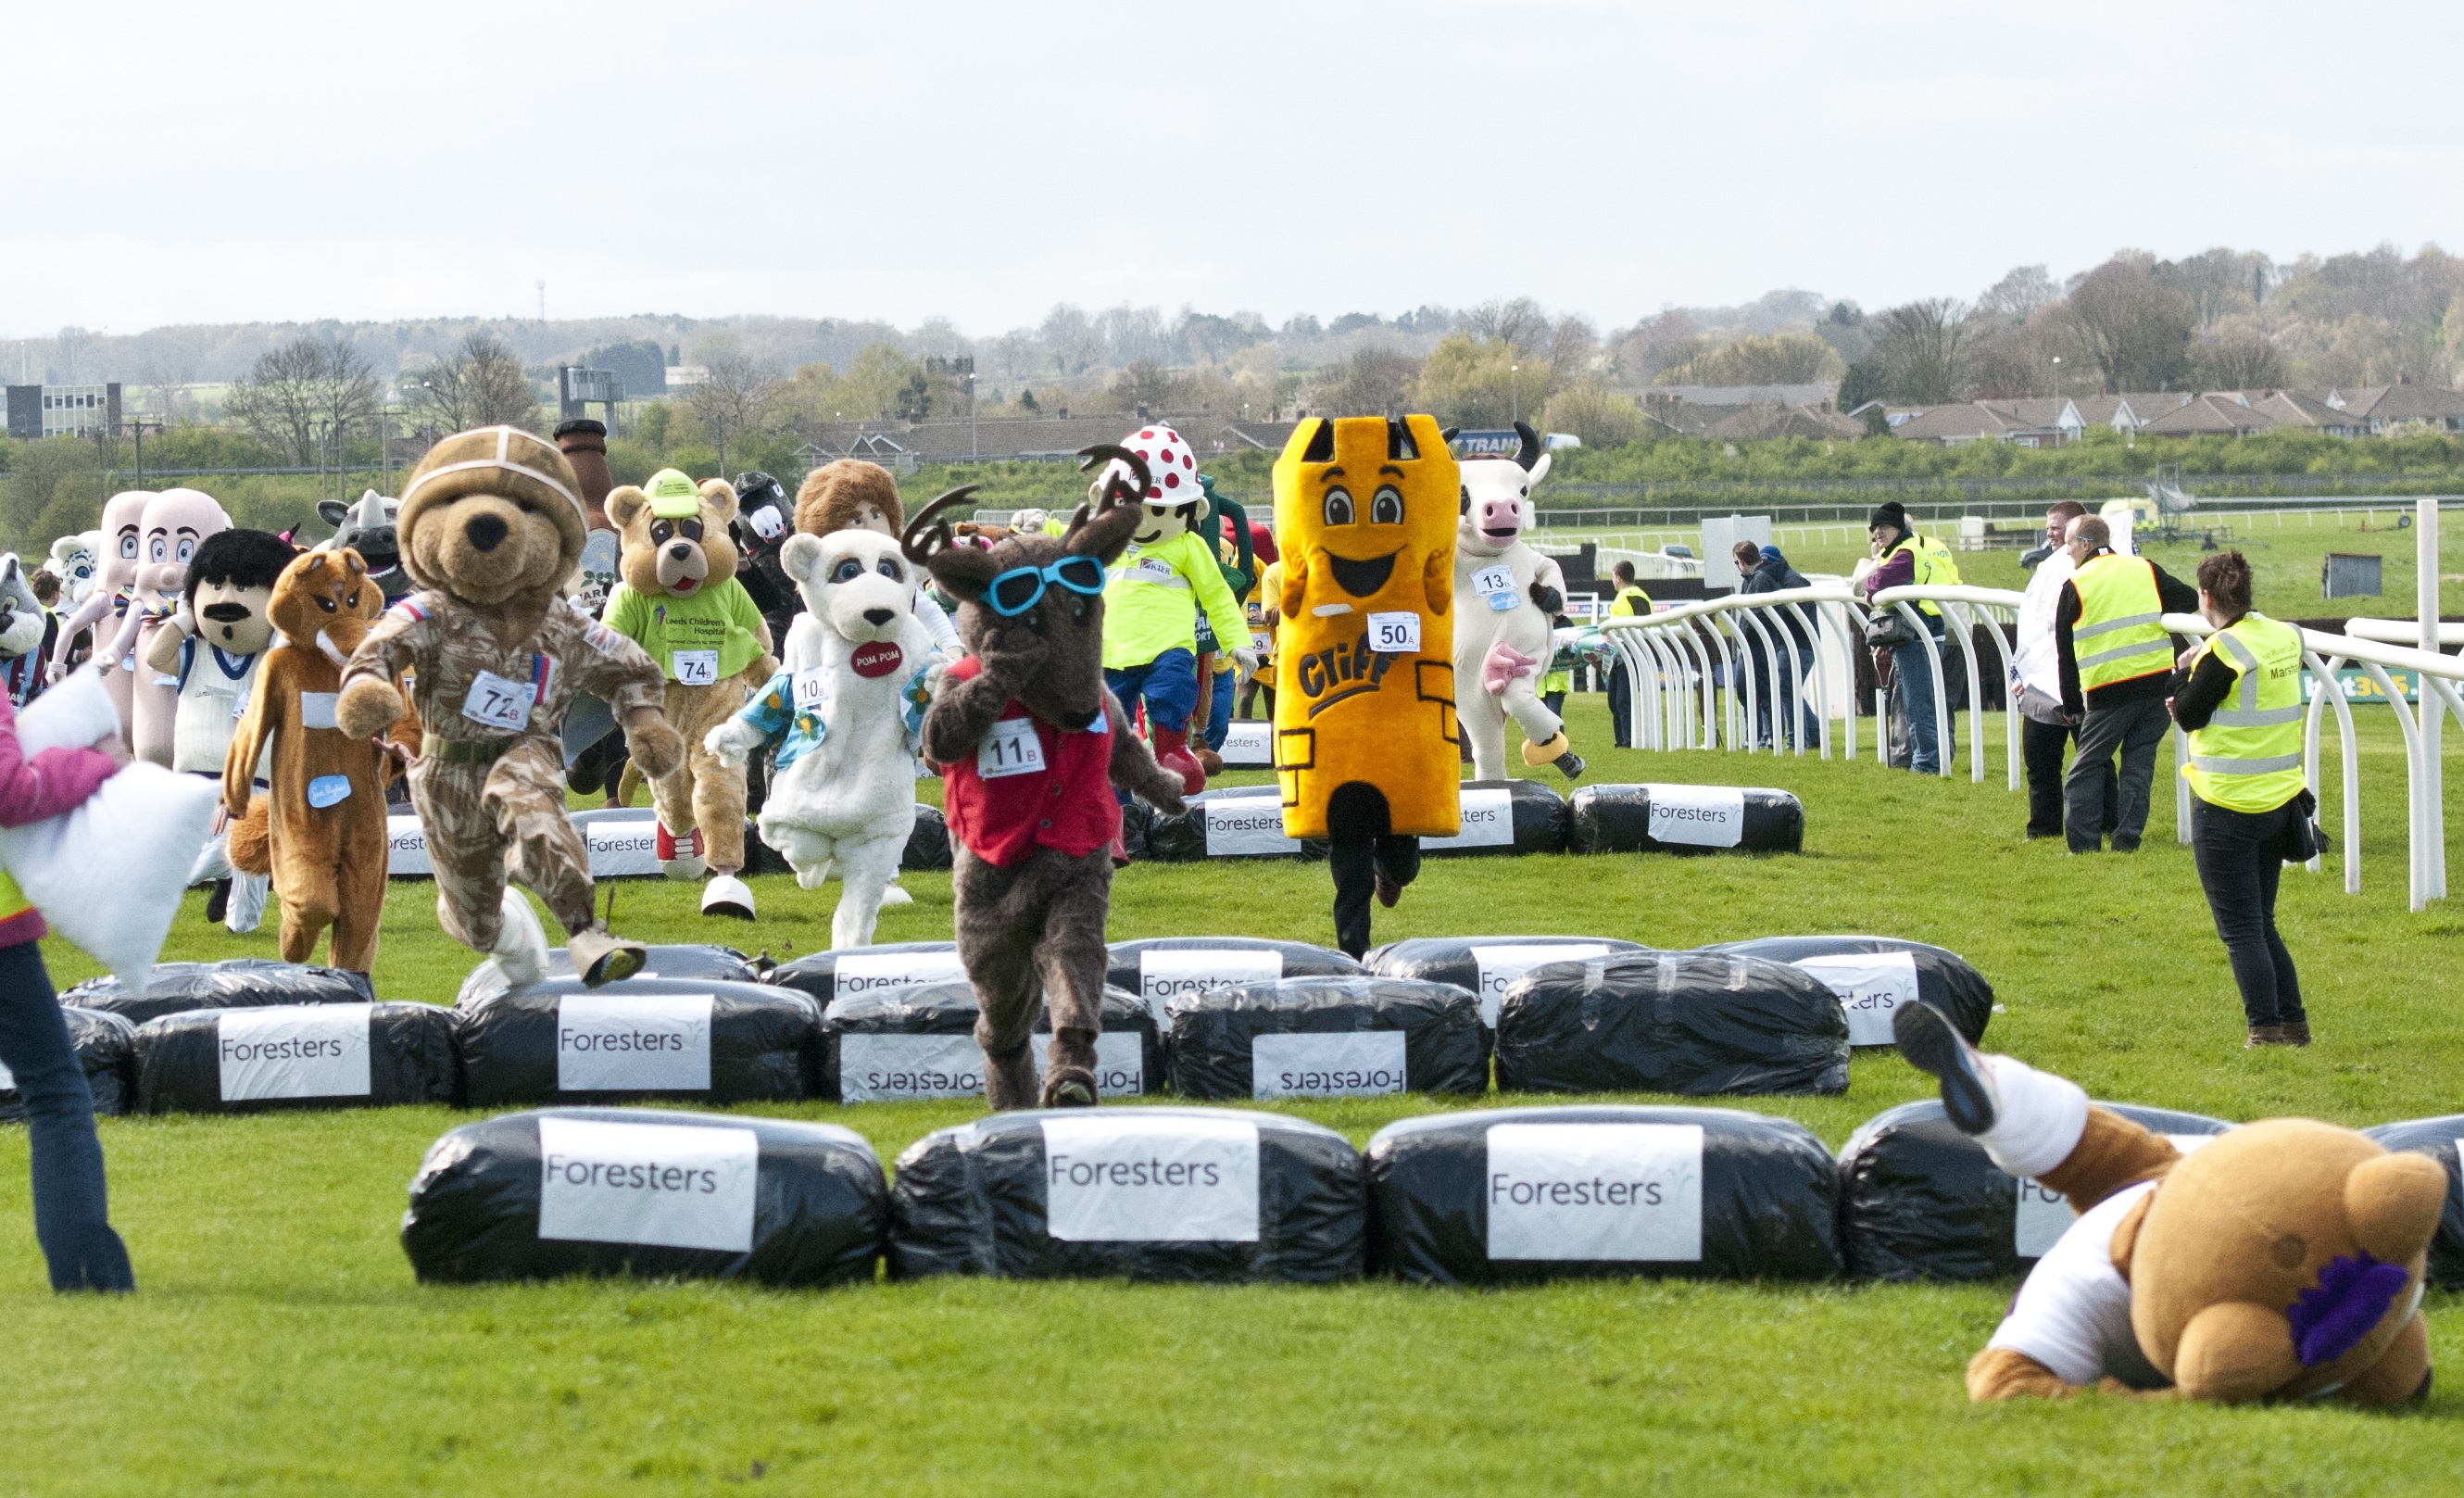 Berry Bear Fall cropped - Mascots to establish World Record at Wetherby Next Sunday.